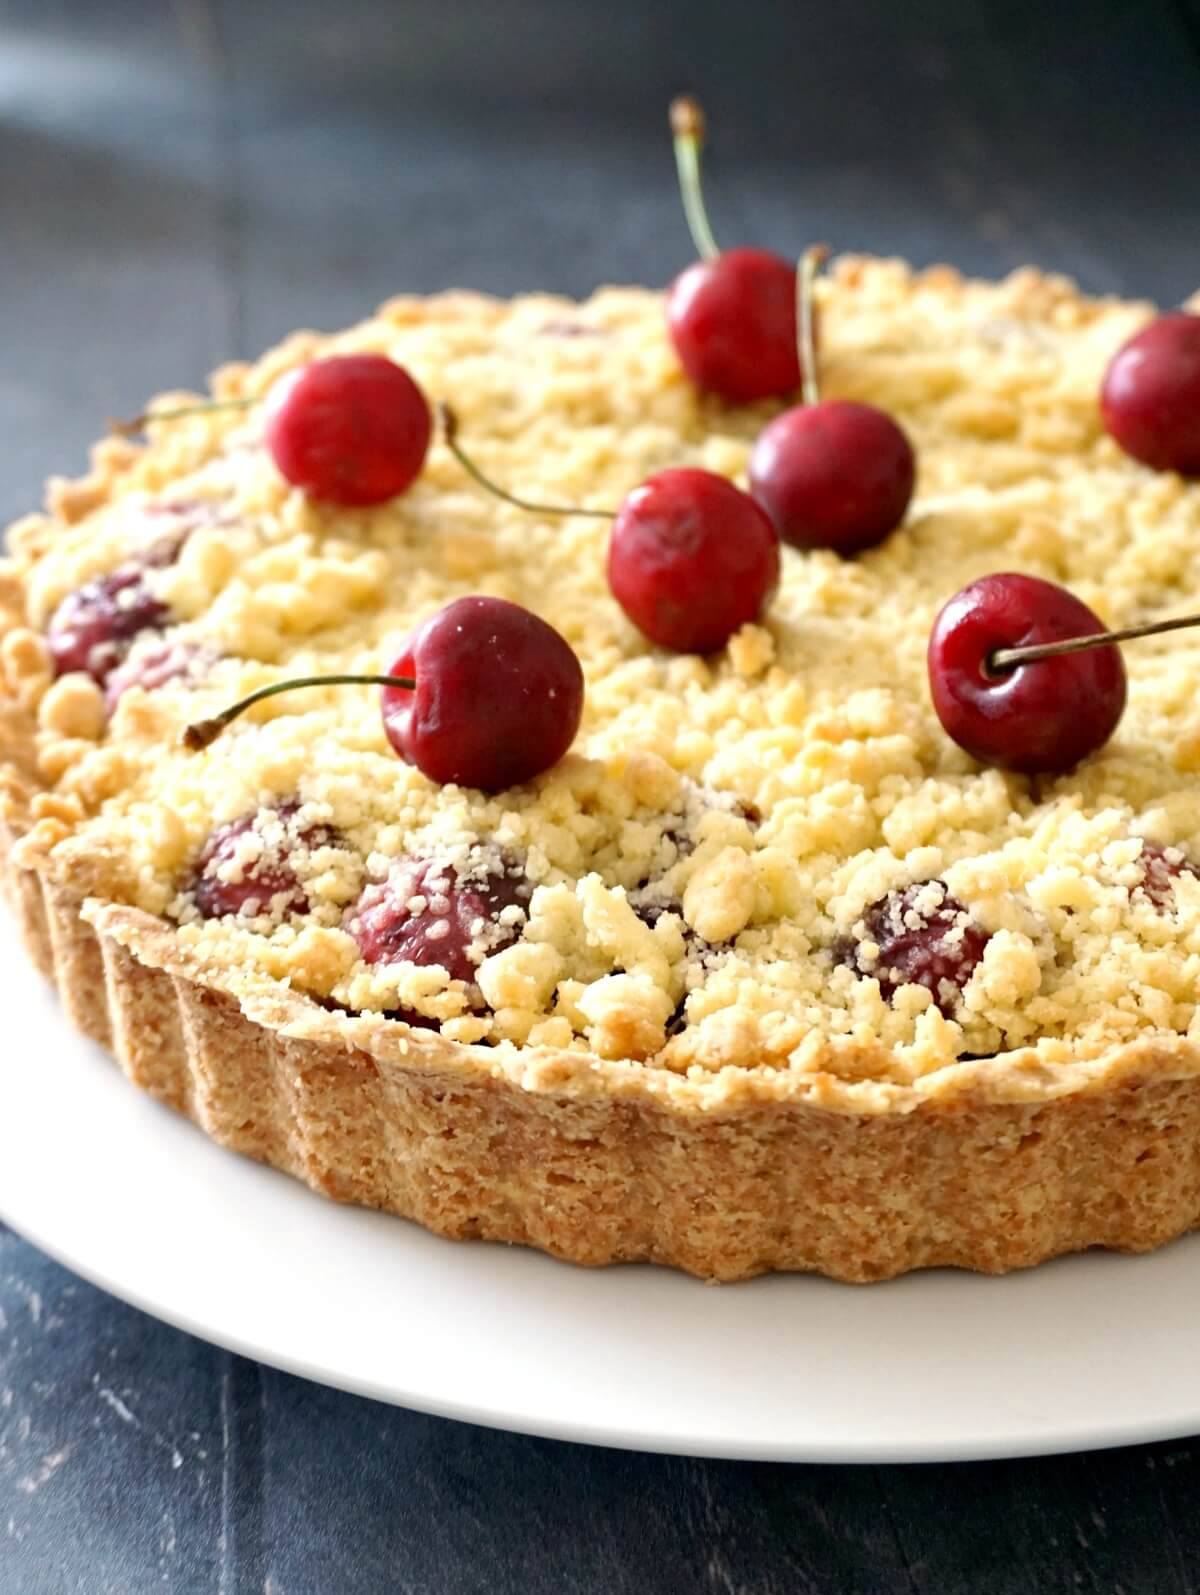 A pie on a white plate with cherries on top